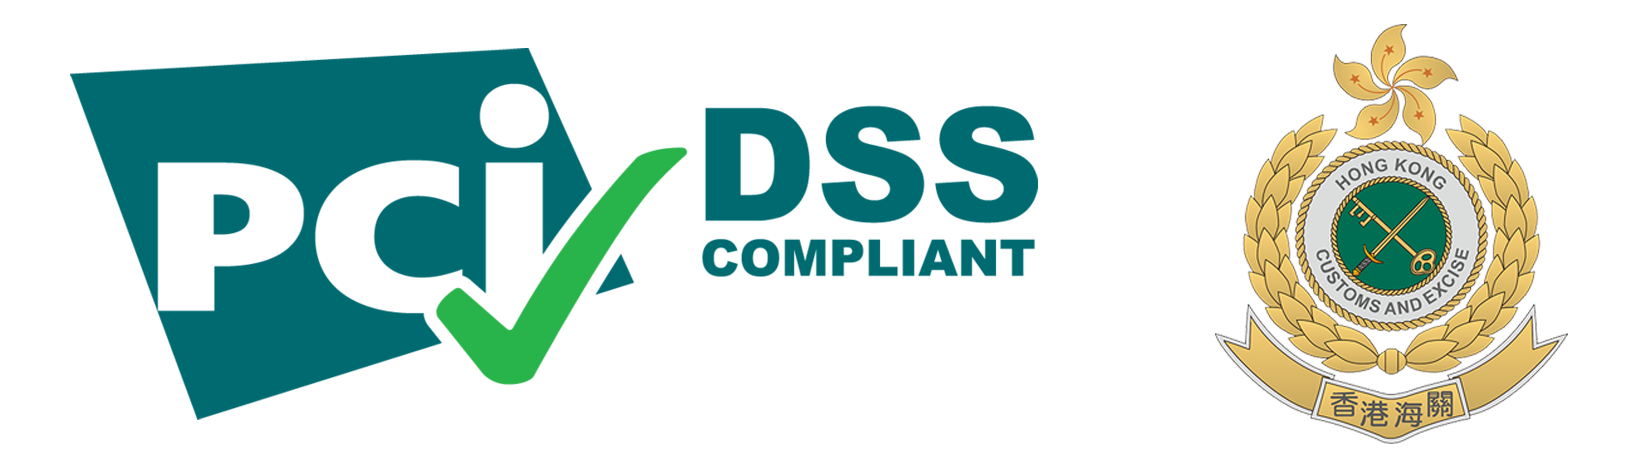 PCI-DSS and HKCED Logo